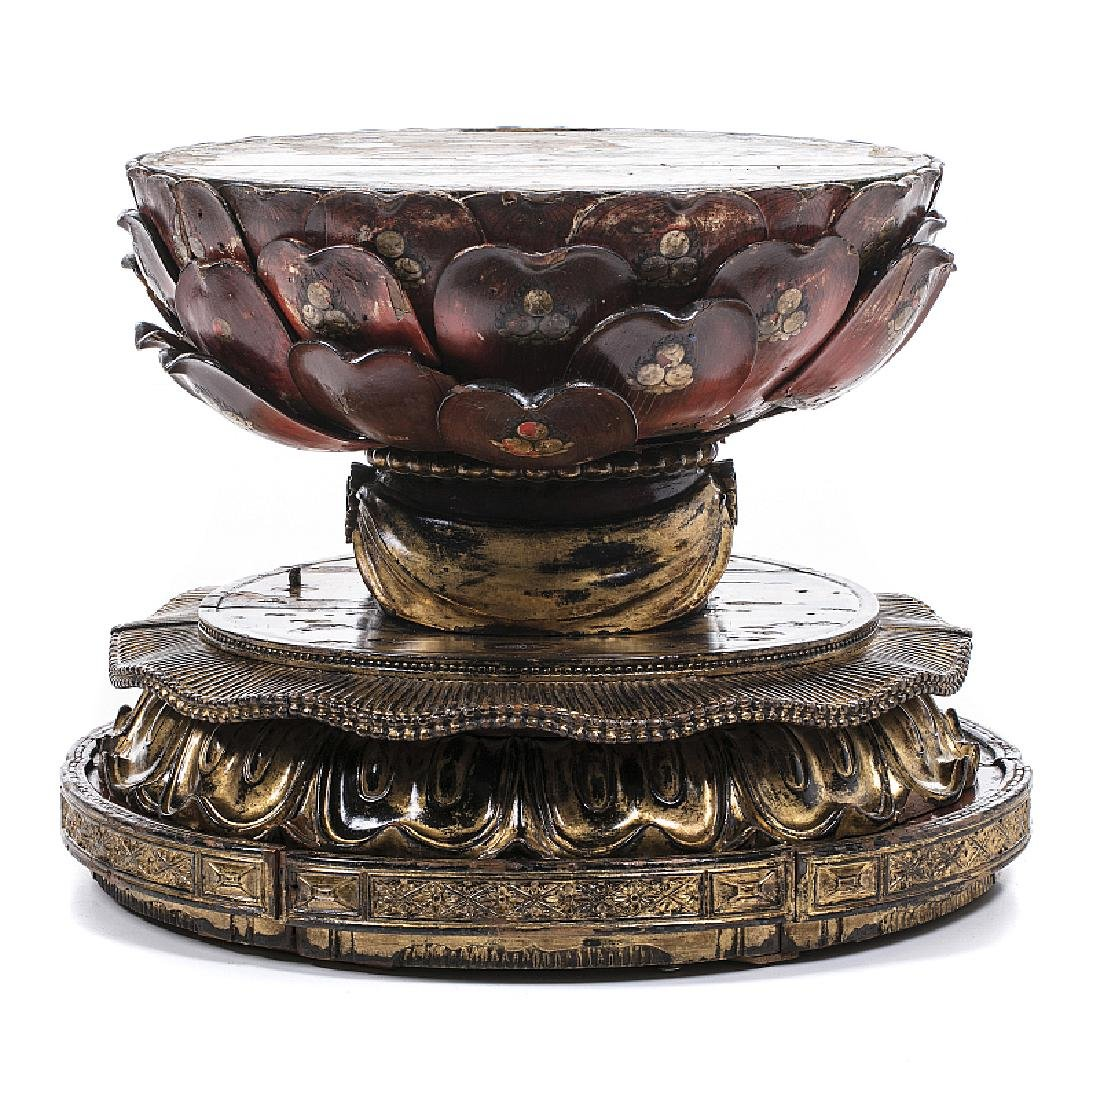 'Lacquer lotus' base in lacquer